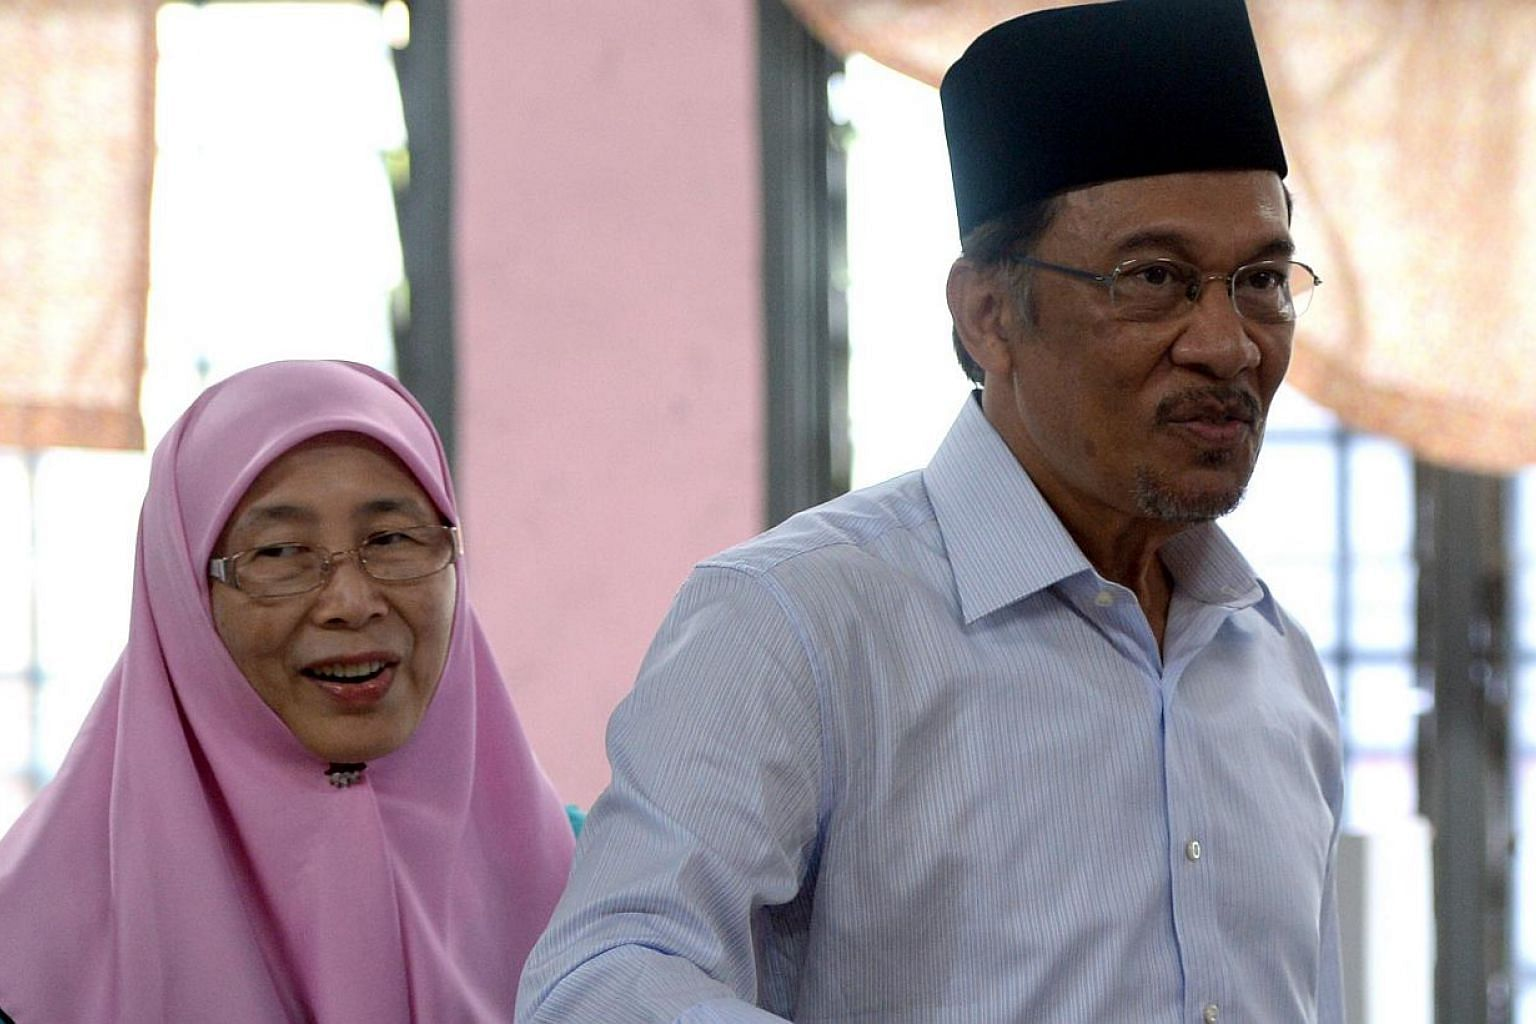 In this file photo taken on May 5, 2013, opposition leader Anwar Ibrahim (right), accompanied by his wife Wan Azizah, casts his vote at a polling station in Permatang Pauh, Penang. -- PHOTO: AFP